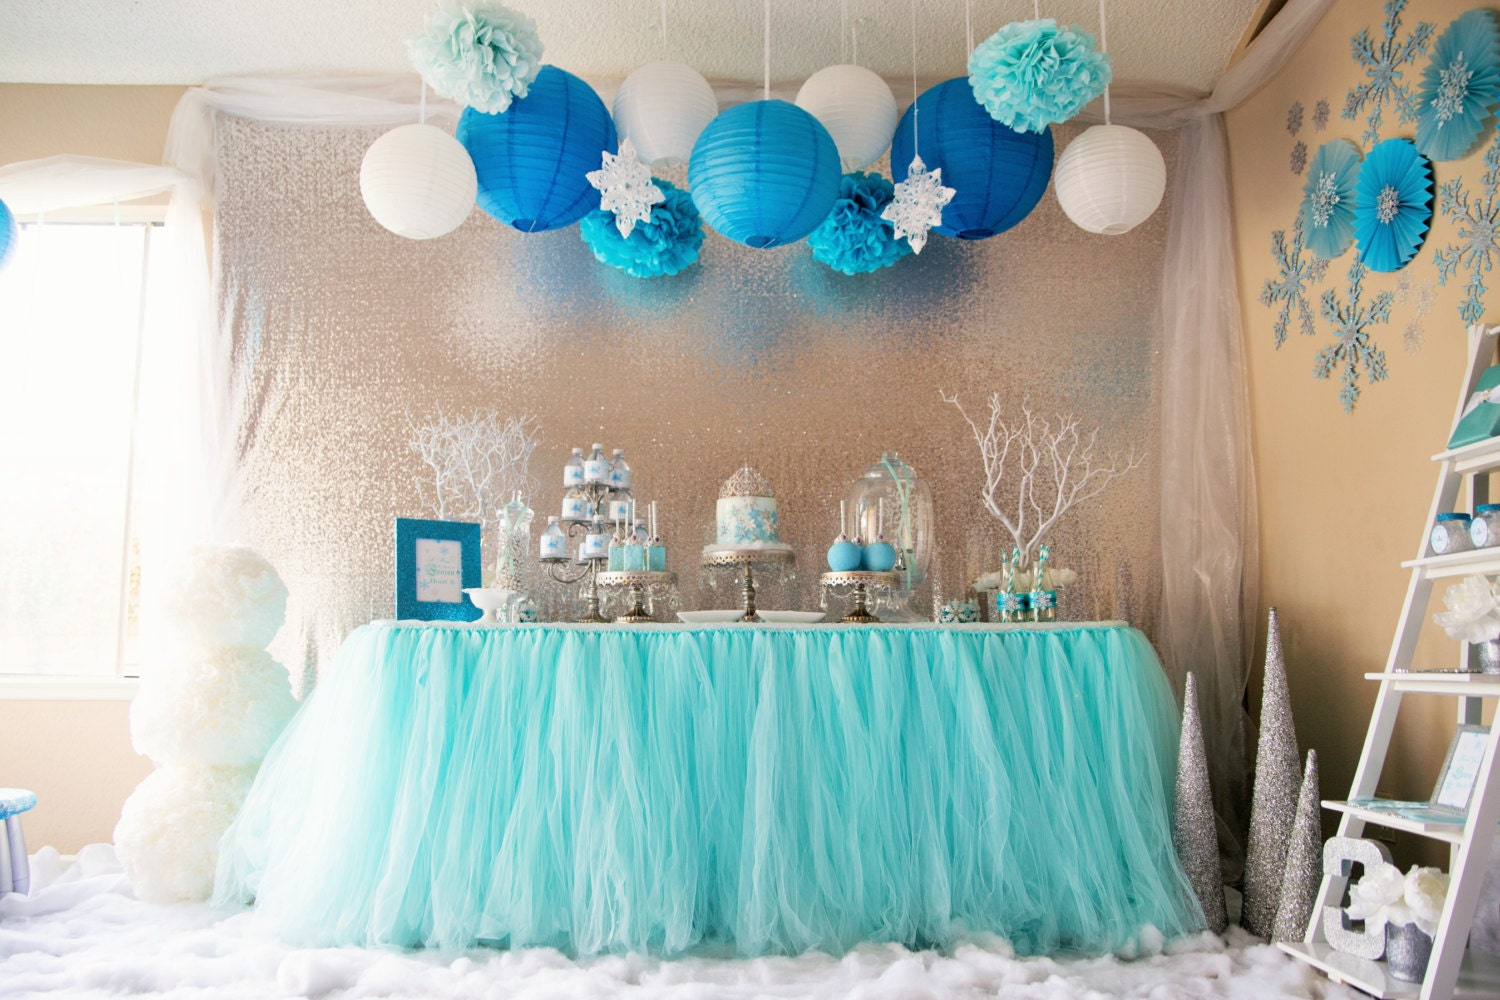 Buffet table skirting - Aqua Blue Tutu Table Skirt